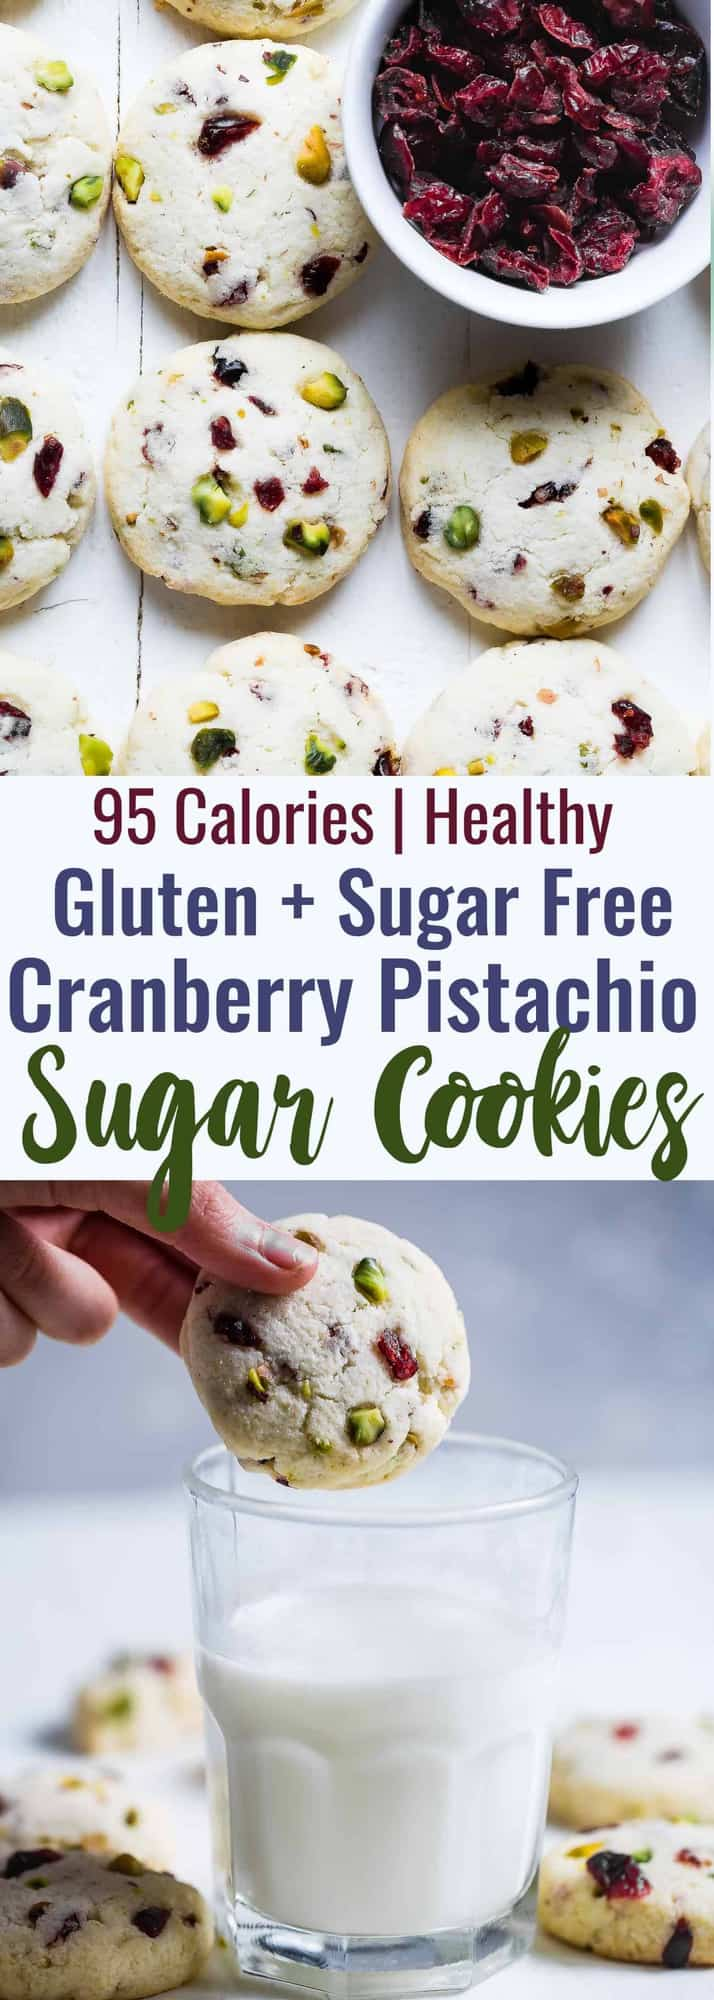 Gluten Free Sugar Free Sugar Cookies -These quick and easy, CHEWY sugar freesugar cookies havetangy and crunchy cranberries and pistachios! They're a healthier Christmas treat for only 95 calories! | #Foodfaithfitness | #Glutenfree #Sugarfree #Lowcarb #Healthy #Sugarcookies